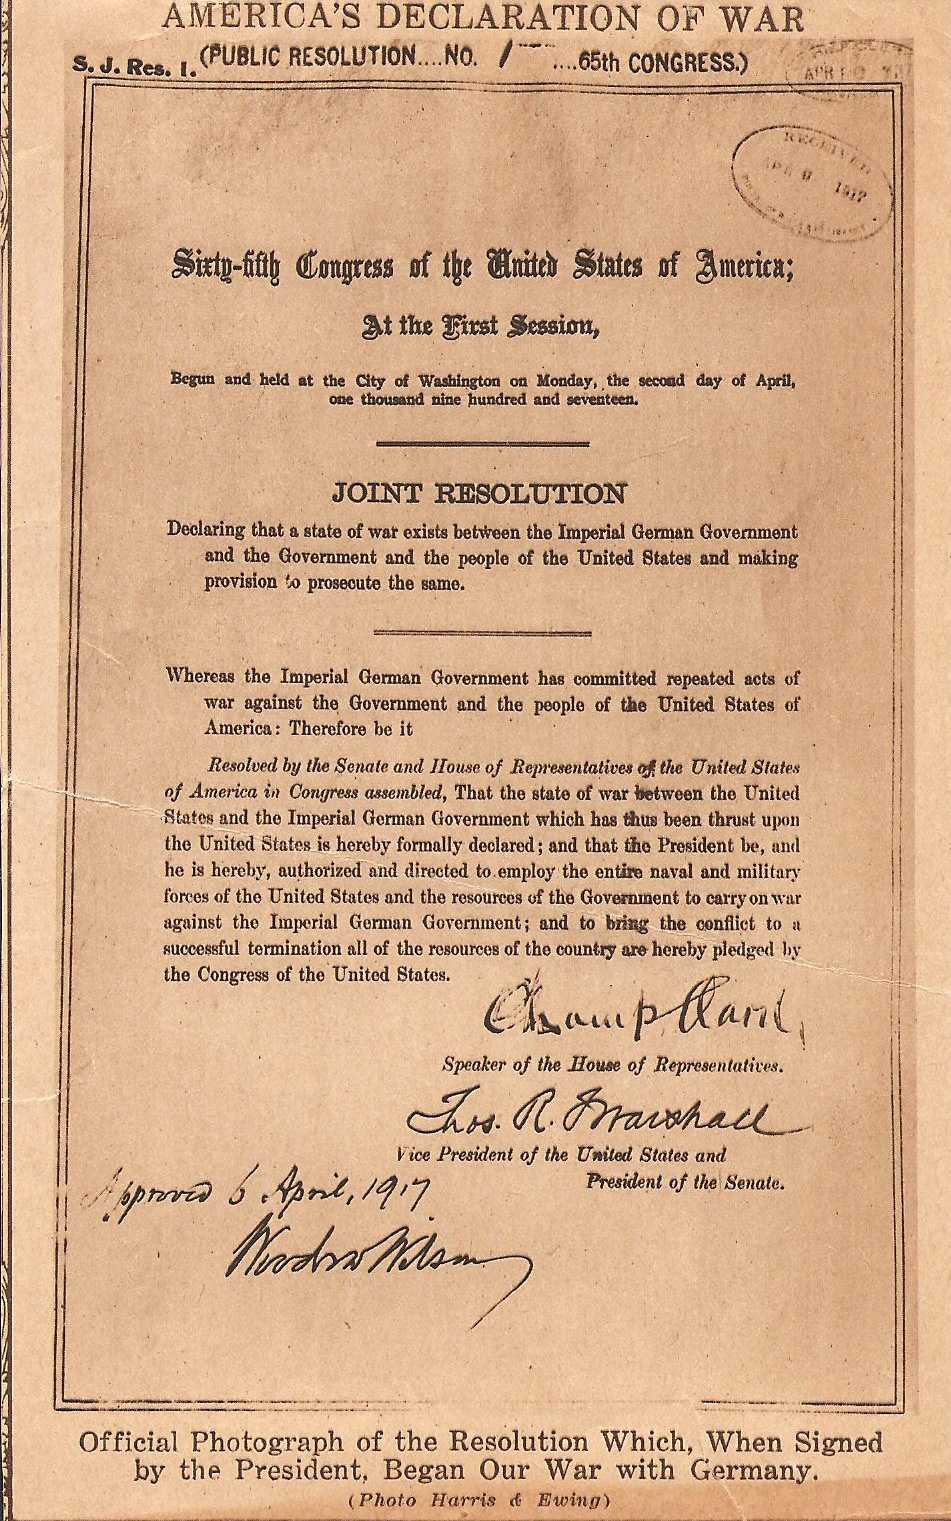 declaration for war in 1917 essay How important was ww1 in causing the russian revolution of february 1917 the first world war was very the war was a great factor in causing the revolution of february 1917 the war lost the tsar the support of the army sign up to view the whole essay and download the pdf for.